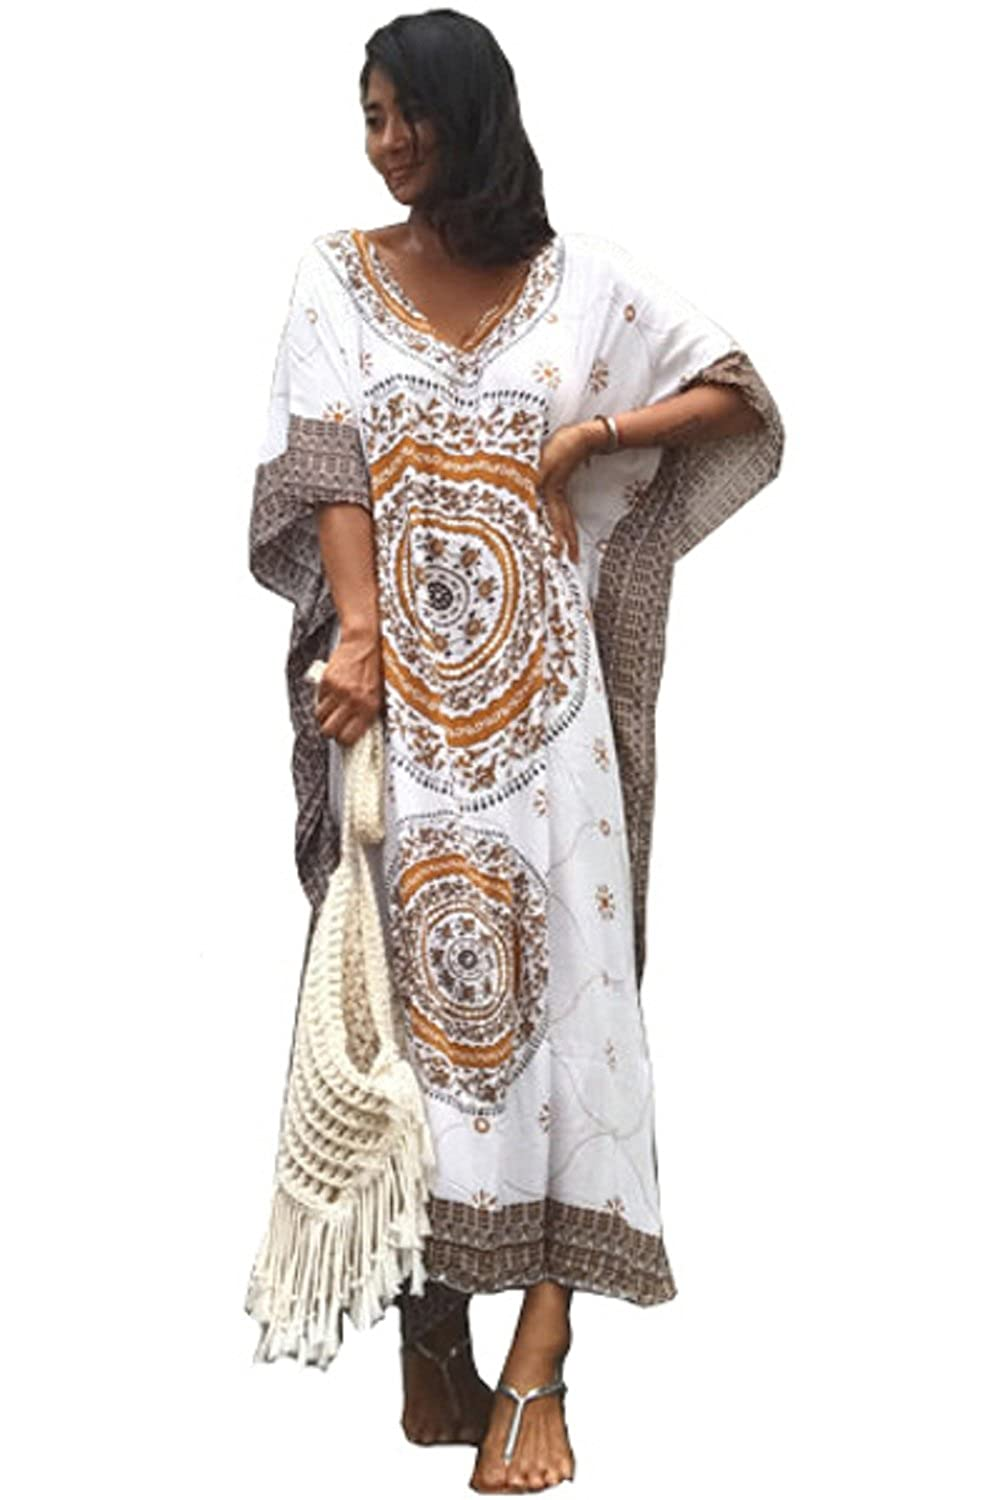 Ho Mall Bohême Mesdames Summer Elegant Beach Poncho Impression Ethnique lâche Caftan Smock Summer Maxi Dress Taille Unique)